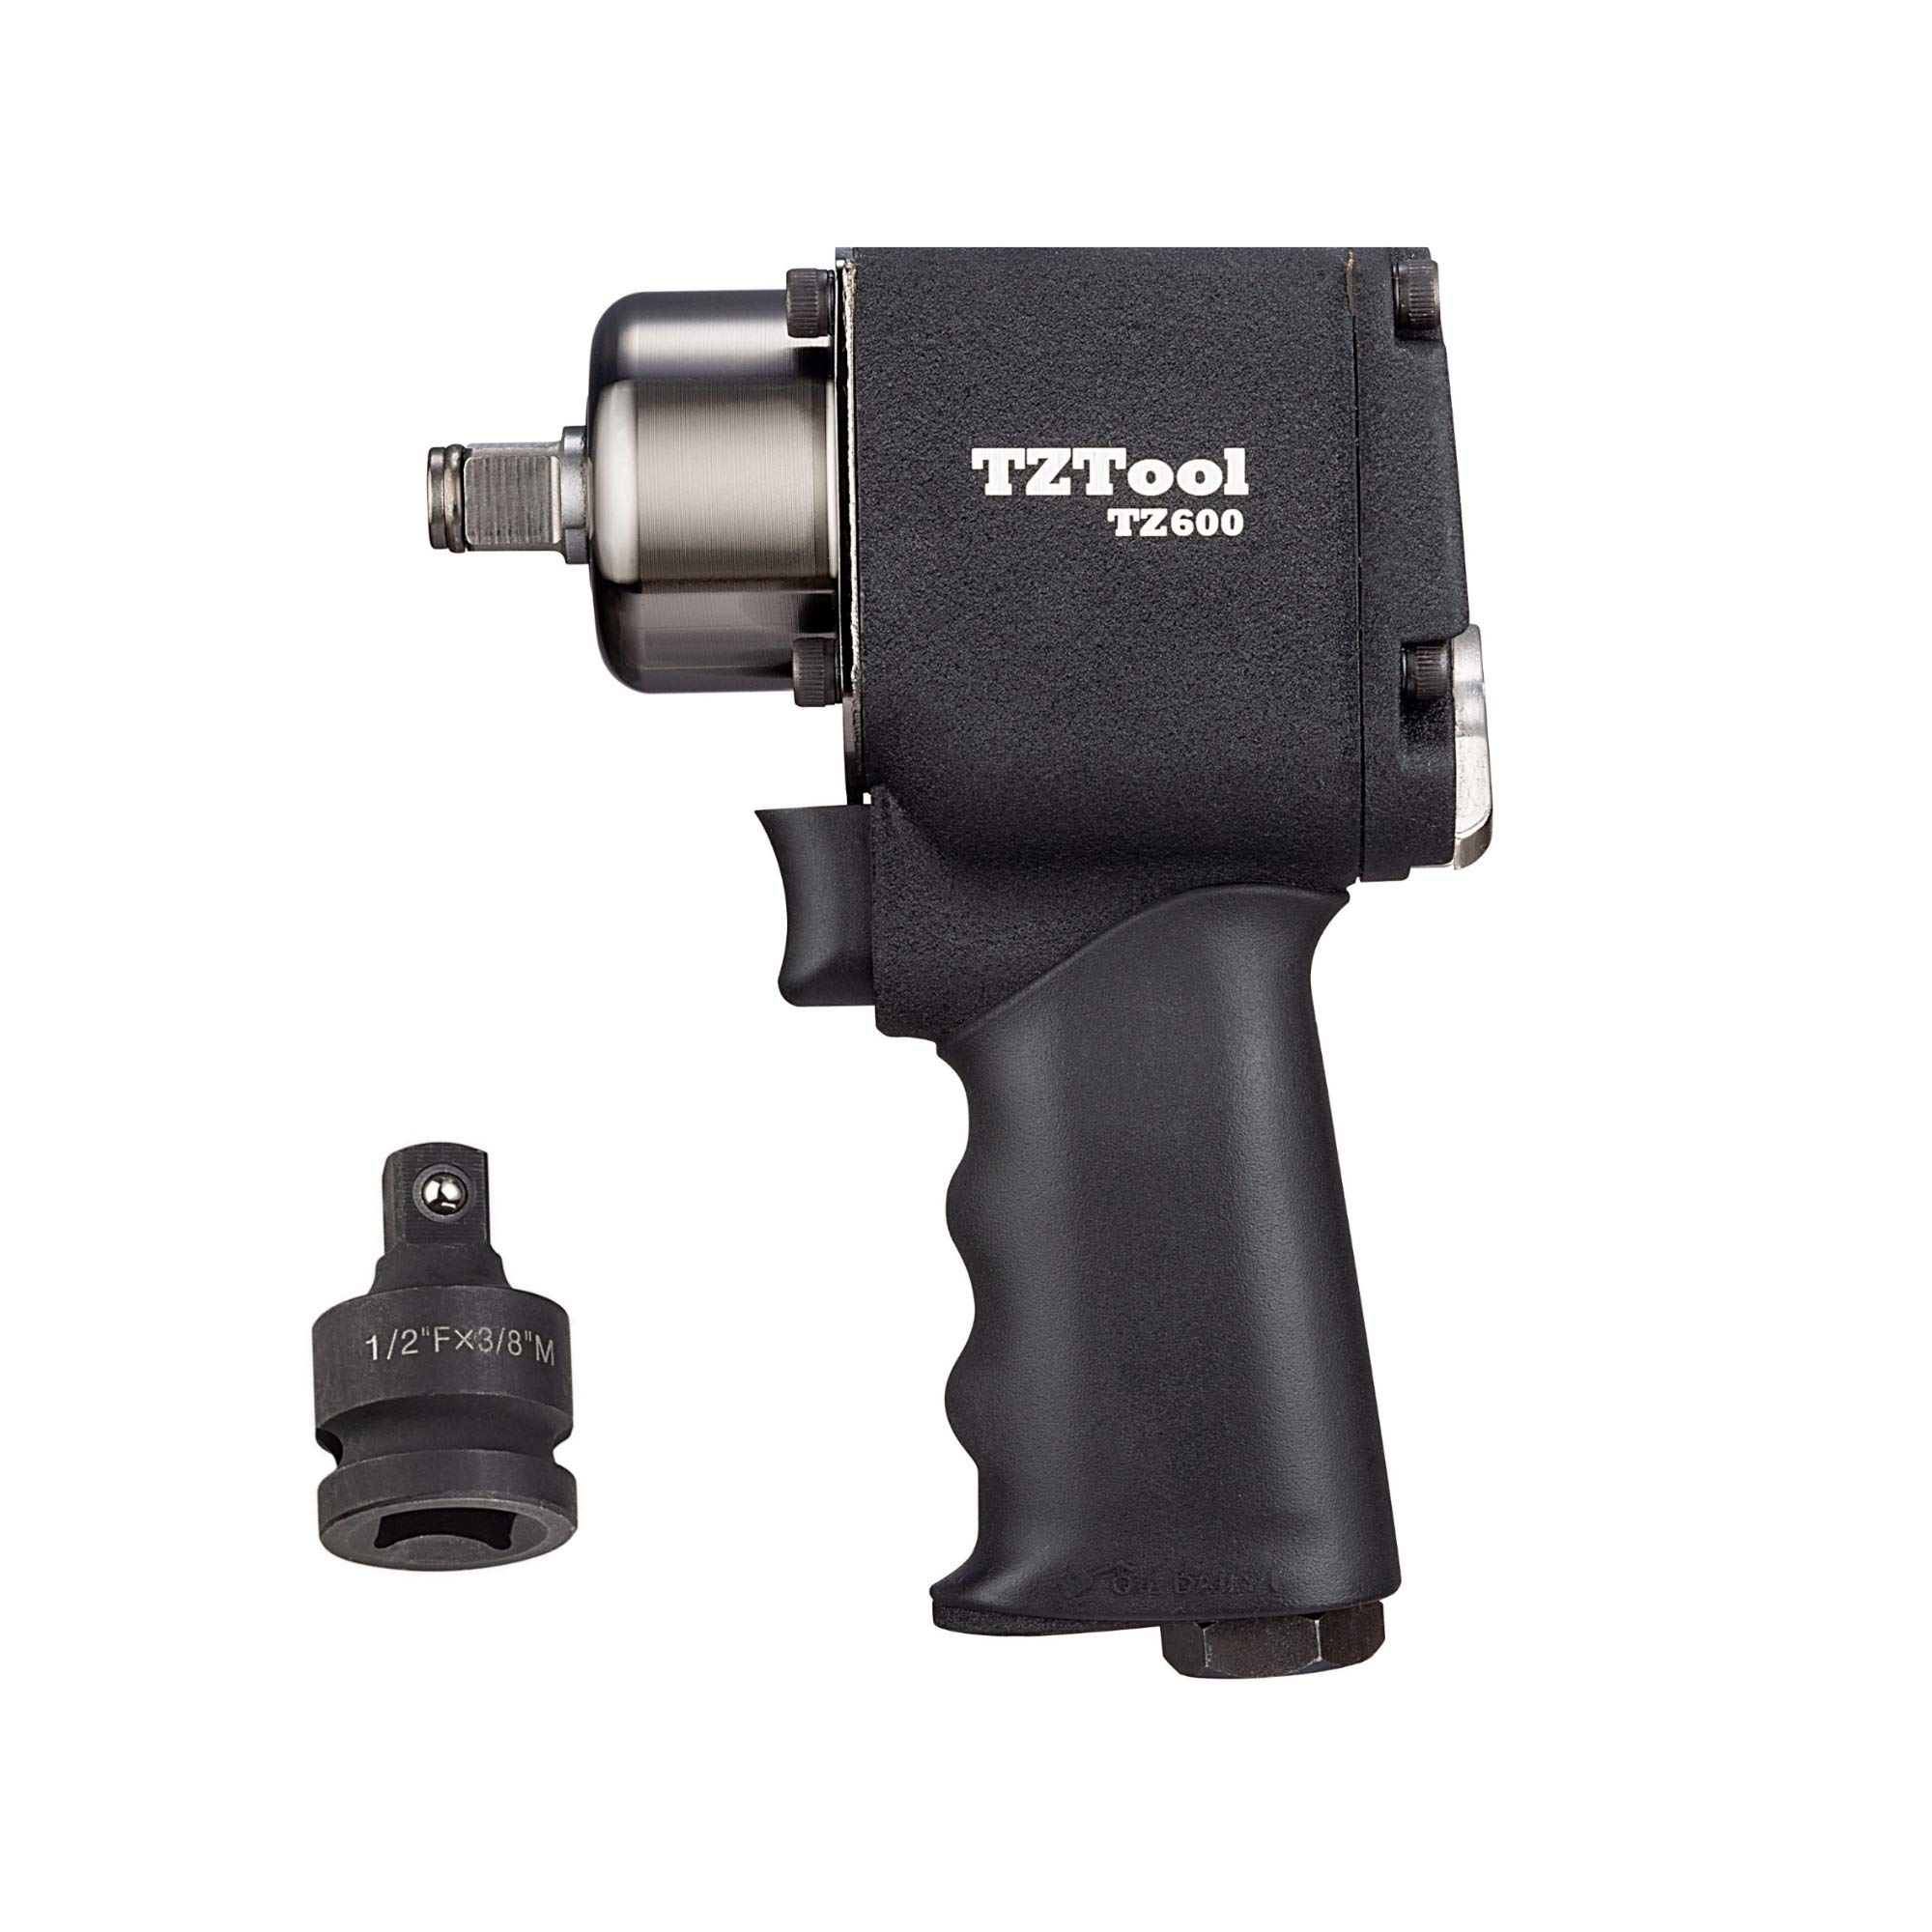 TZTOOL 1/2'' Compact impact wrench with 3/8'' impact adapter